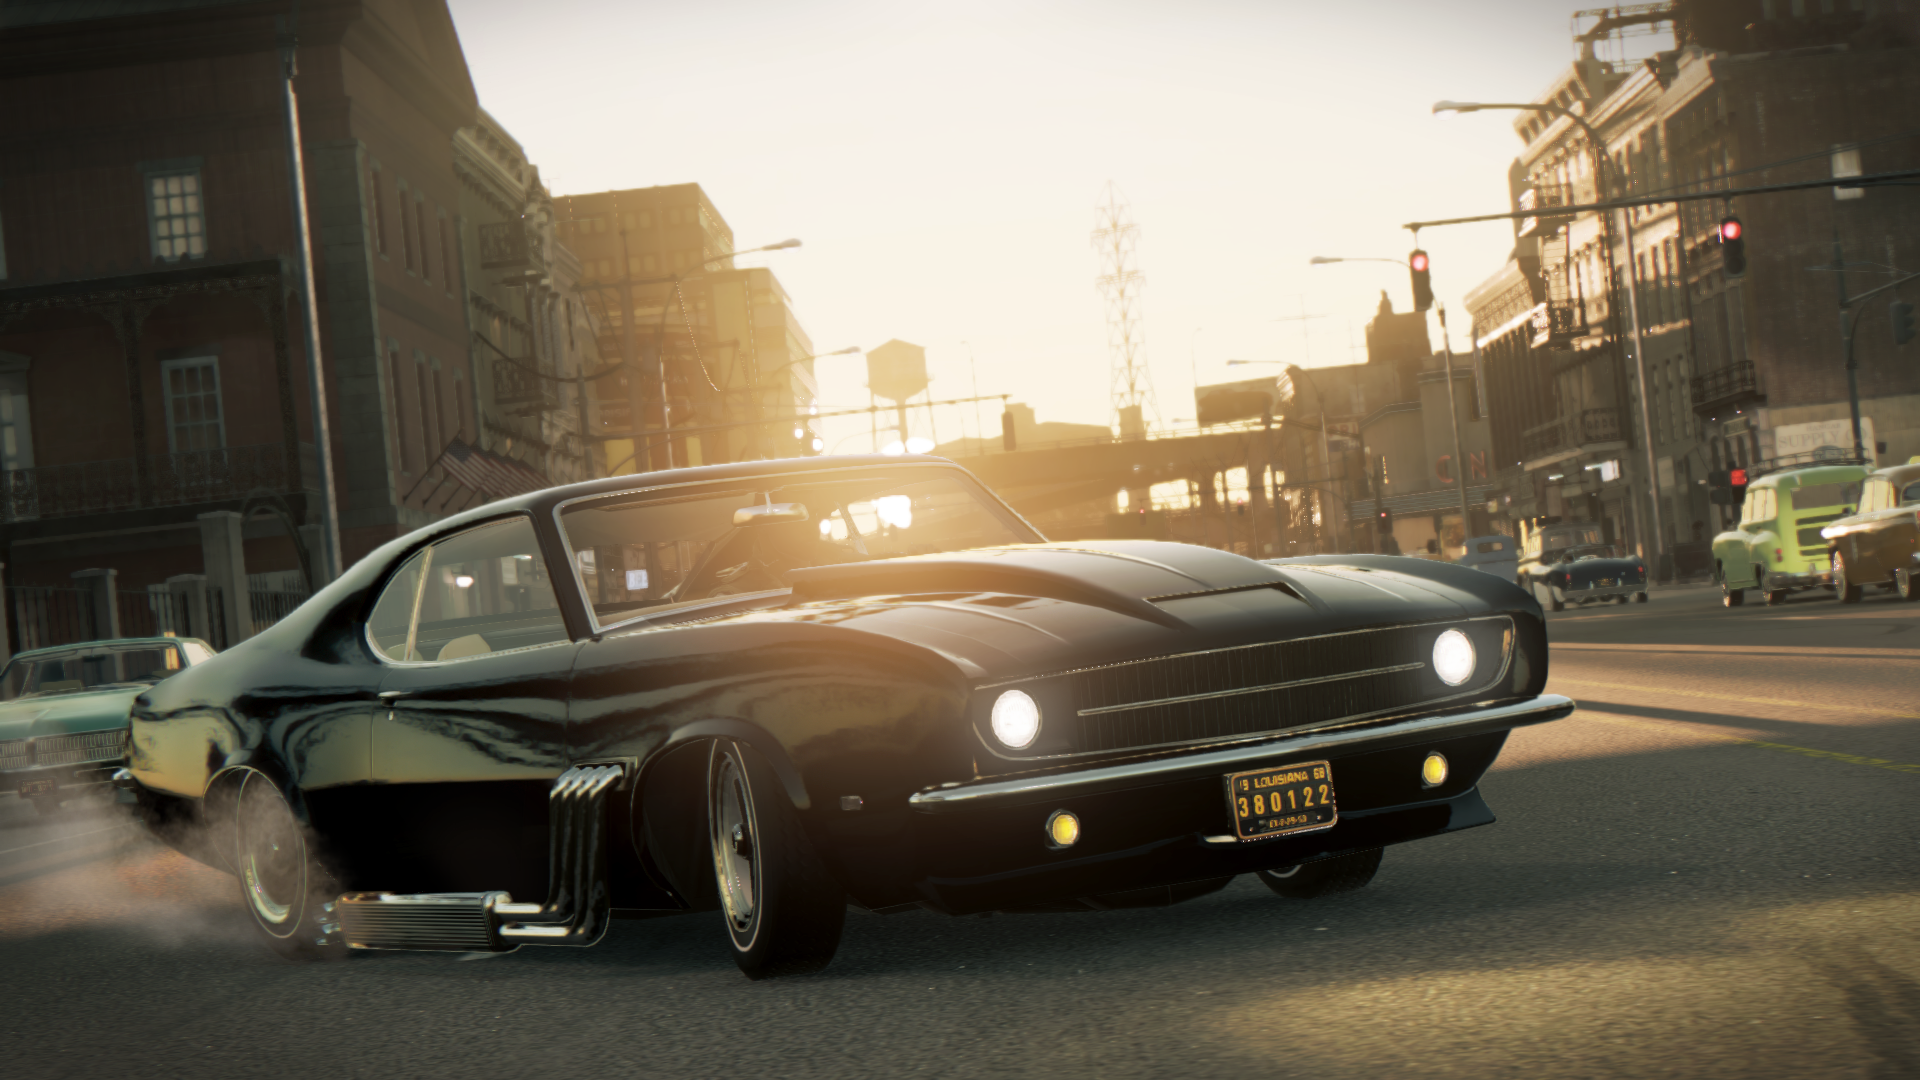 Here, have 20 minutes of Mafia 3 footage